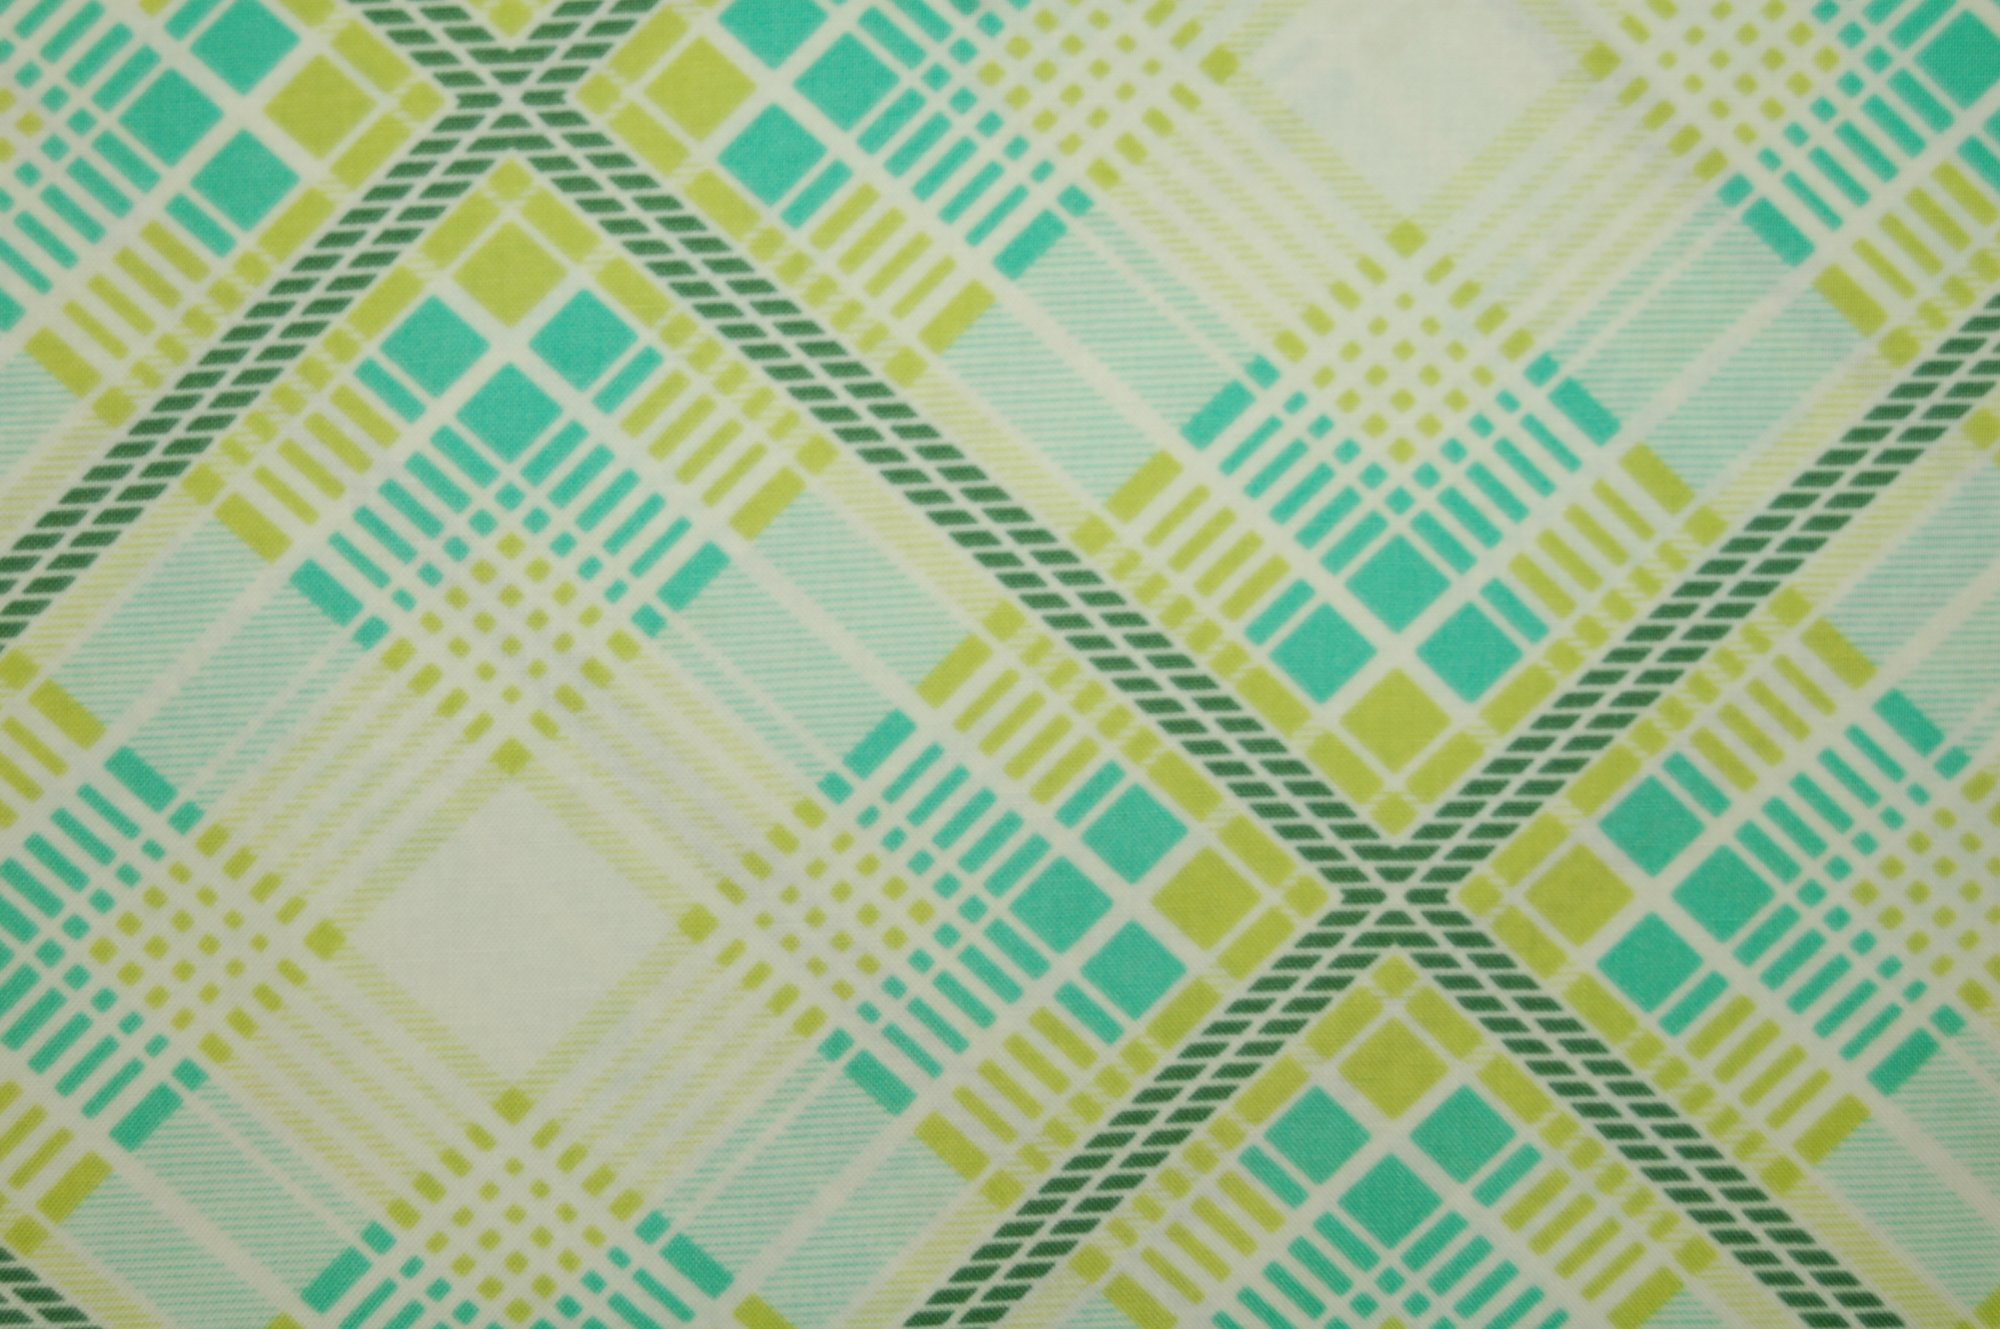 Up Parasol - Summer Plaid by Heather Bailey for Free Spirit